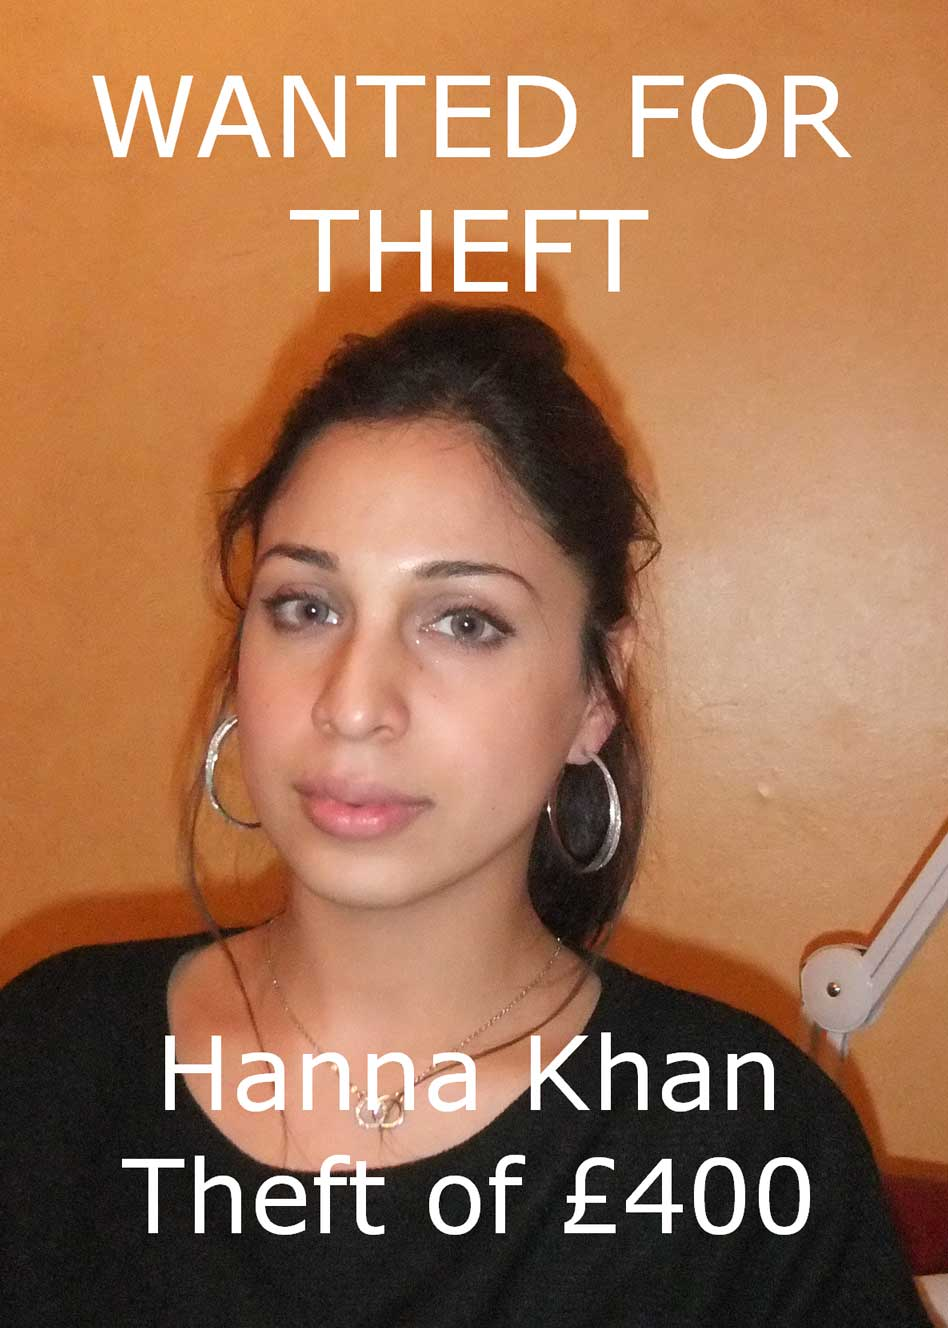 Hanna_Khan_Wanted_for_Theft